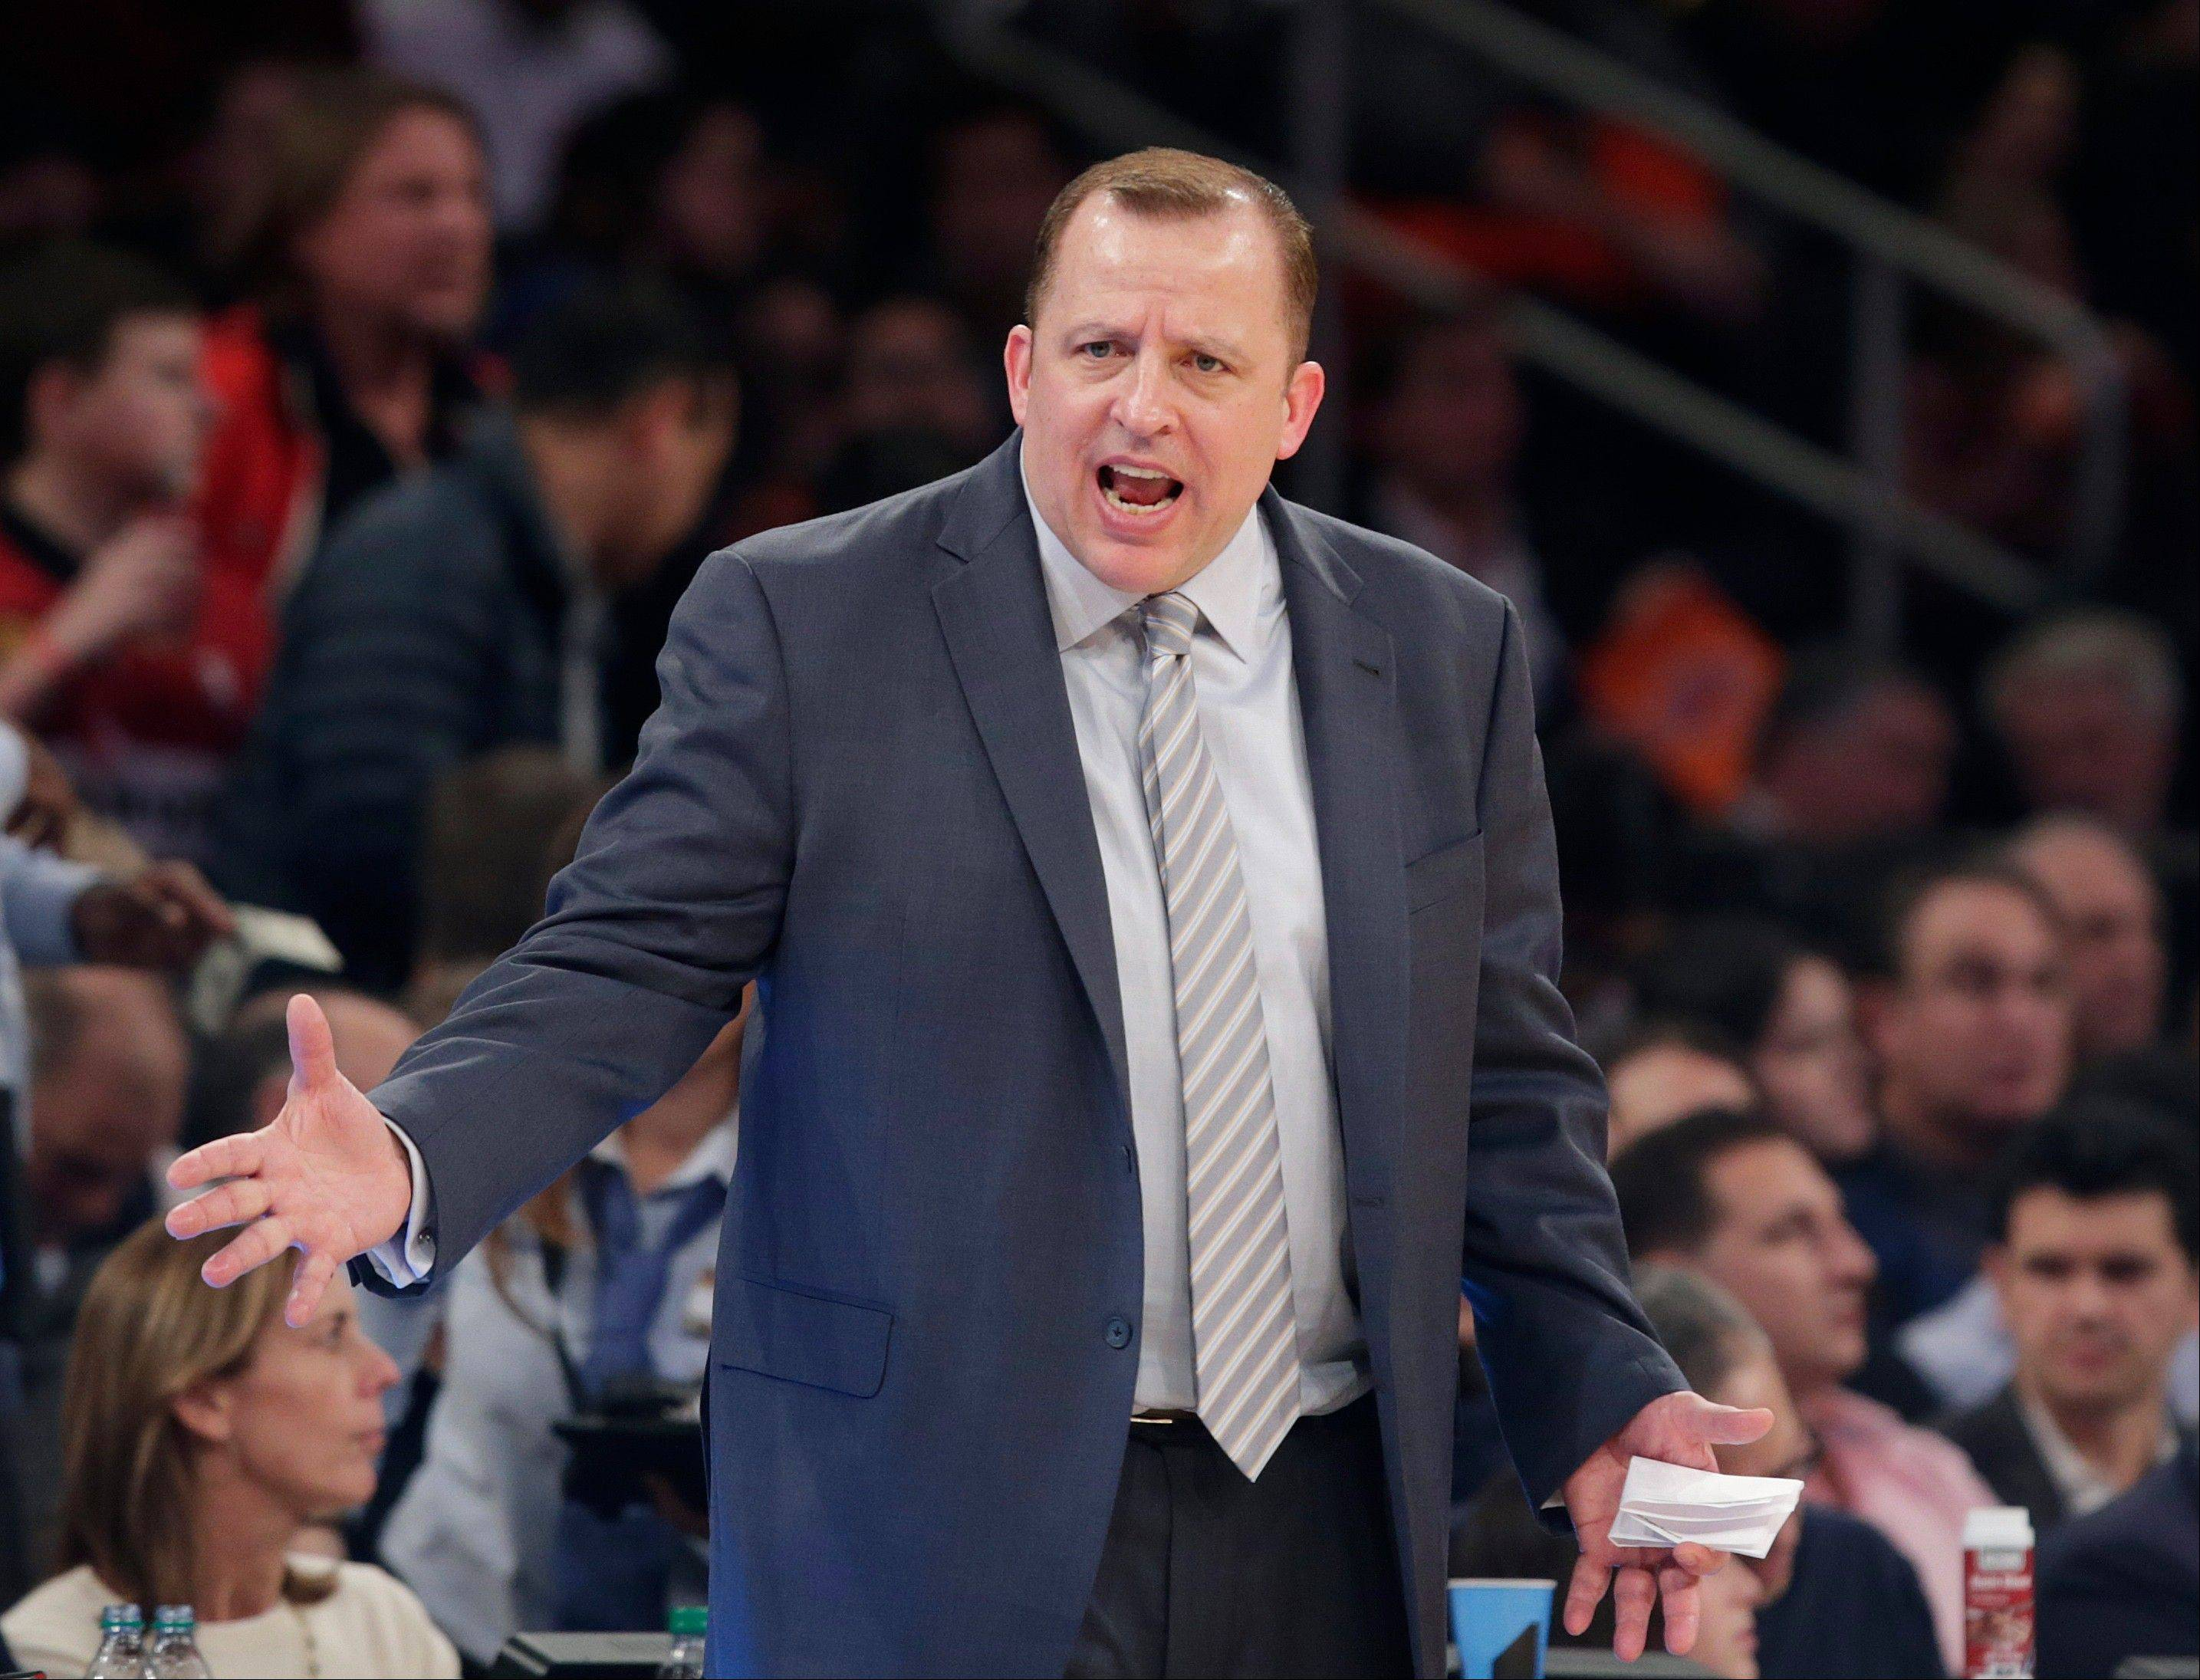 The Bulls� Tom Thibodeau bluntly dismissed speculation that he might consider coaching the New York Knicks in the near future.